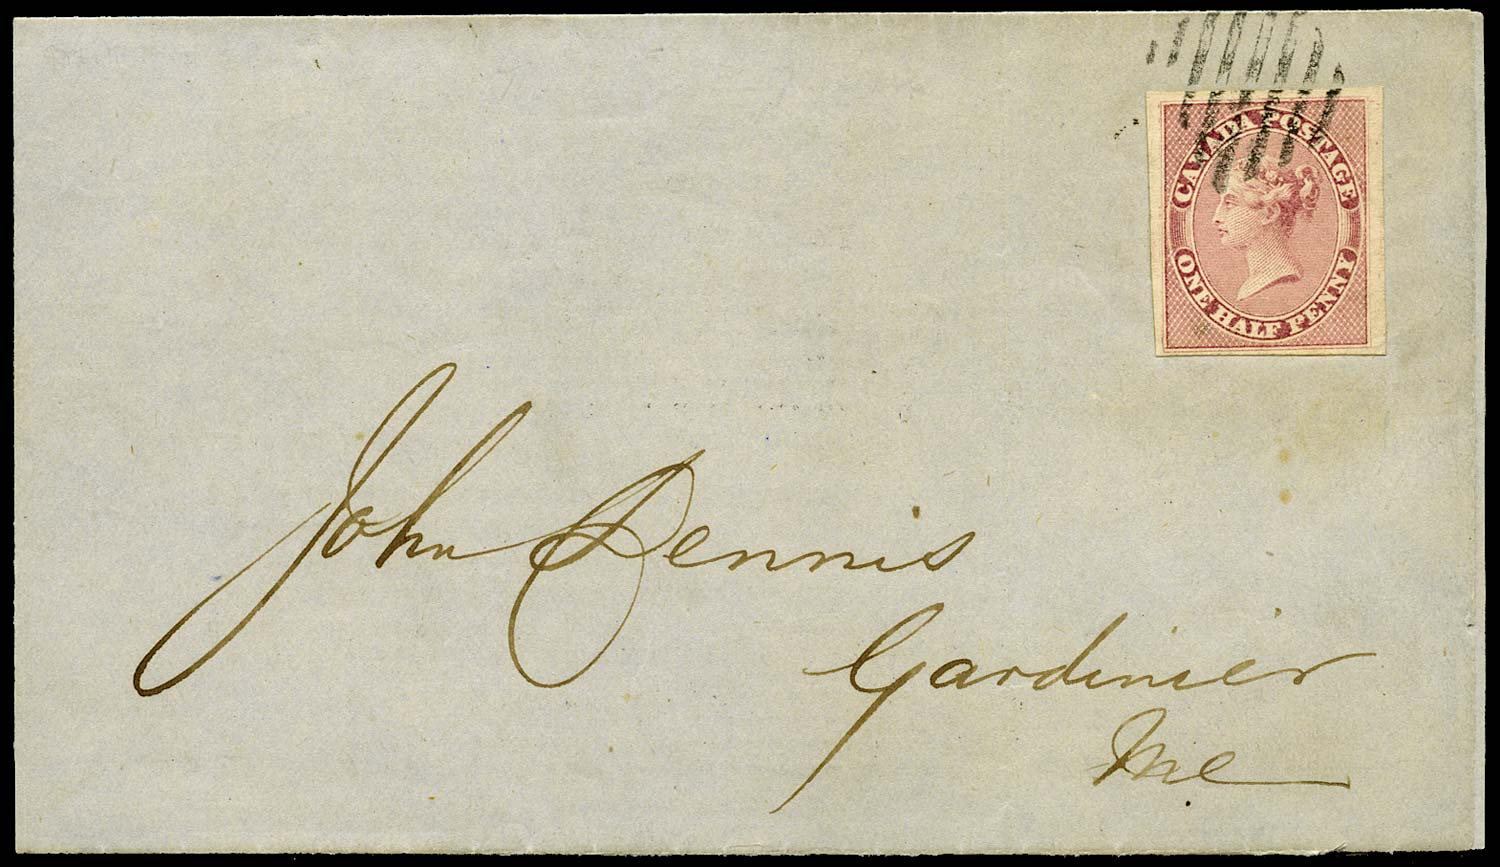 CANADA 1858  SG17 Cover from Toronto to Gardiner with ½d deep rose